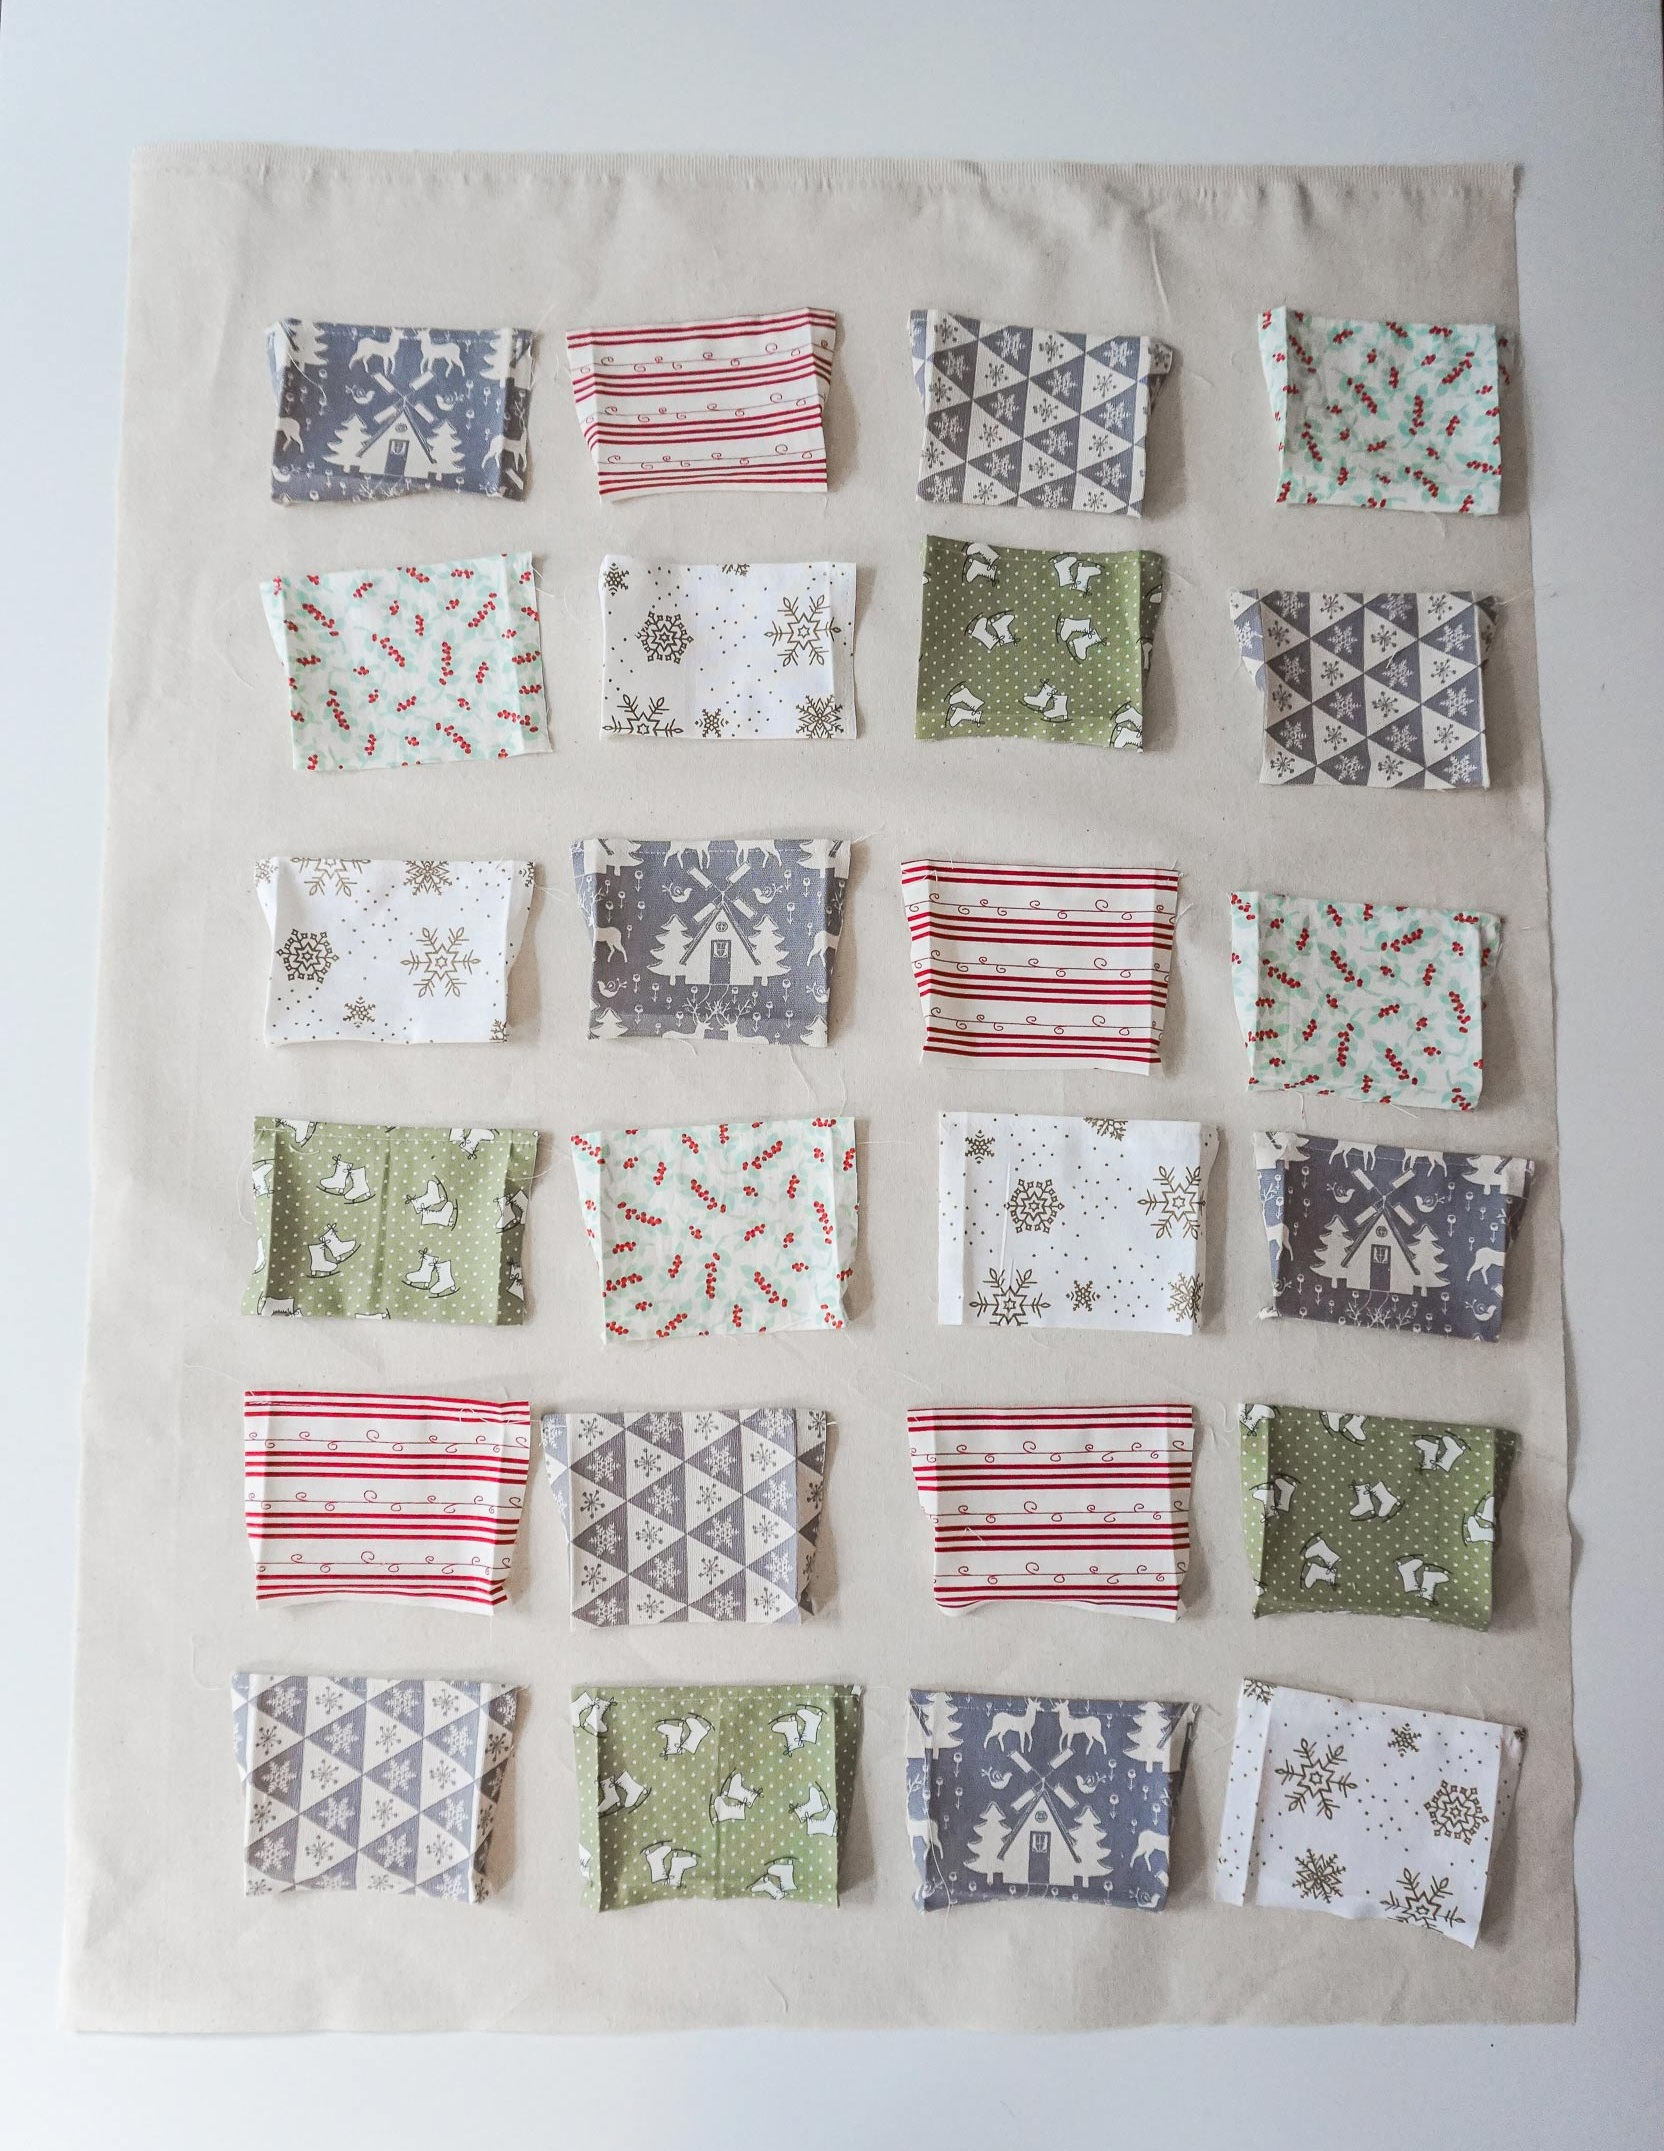 Diy Fabric Advent Calendar Tutorial Dot N Cross Sewing And Pattern Cutting Classes In Falmouth Cornwall